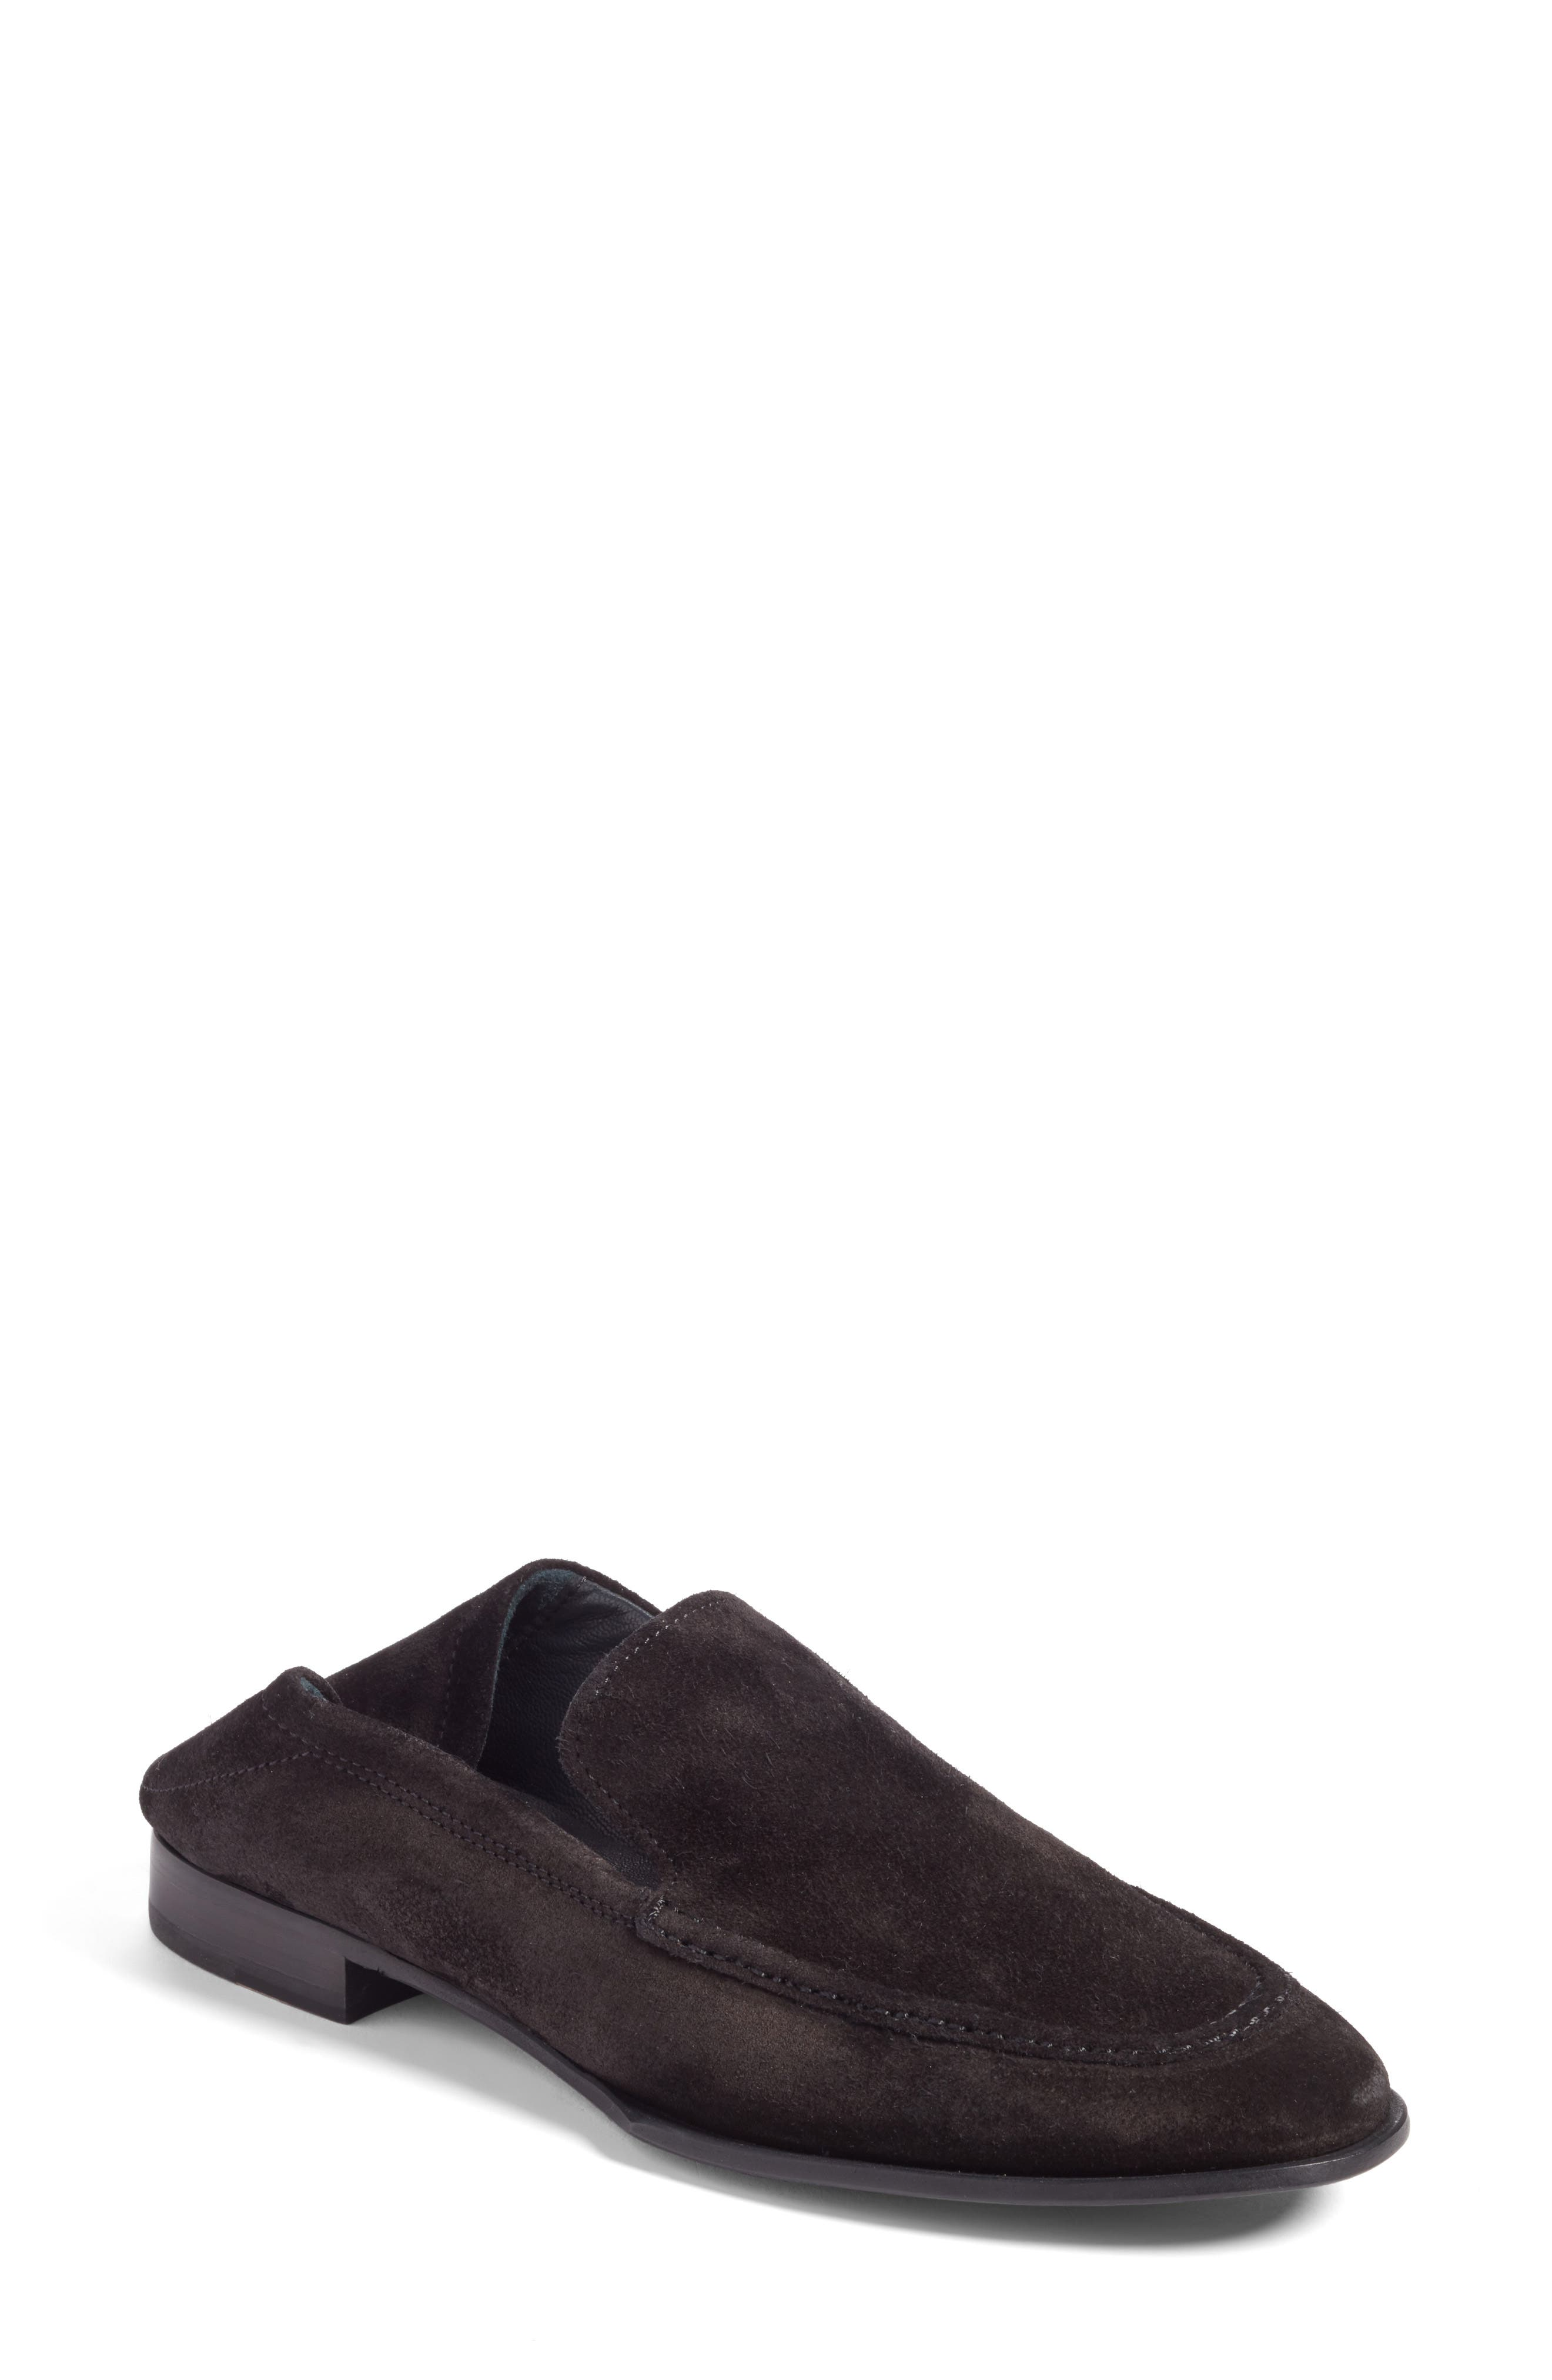 Alix Convertible Loafer,                         Main,                         color, 008